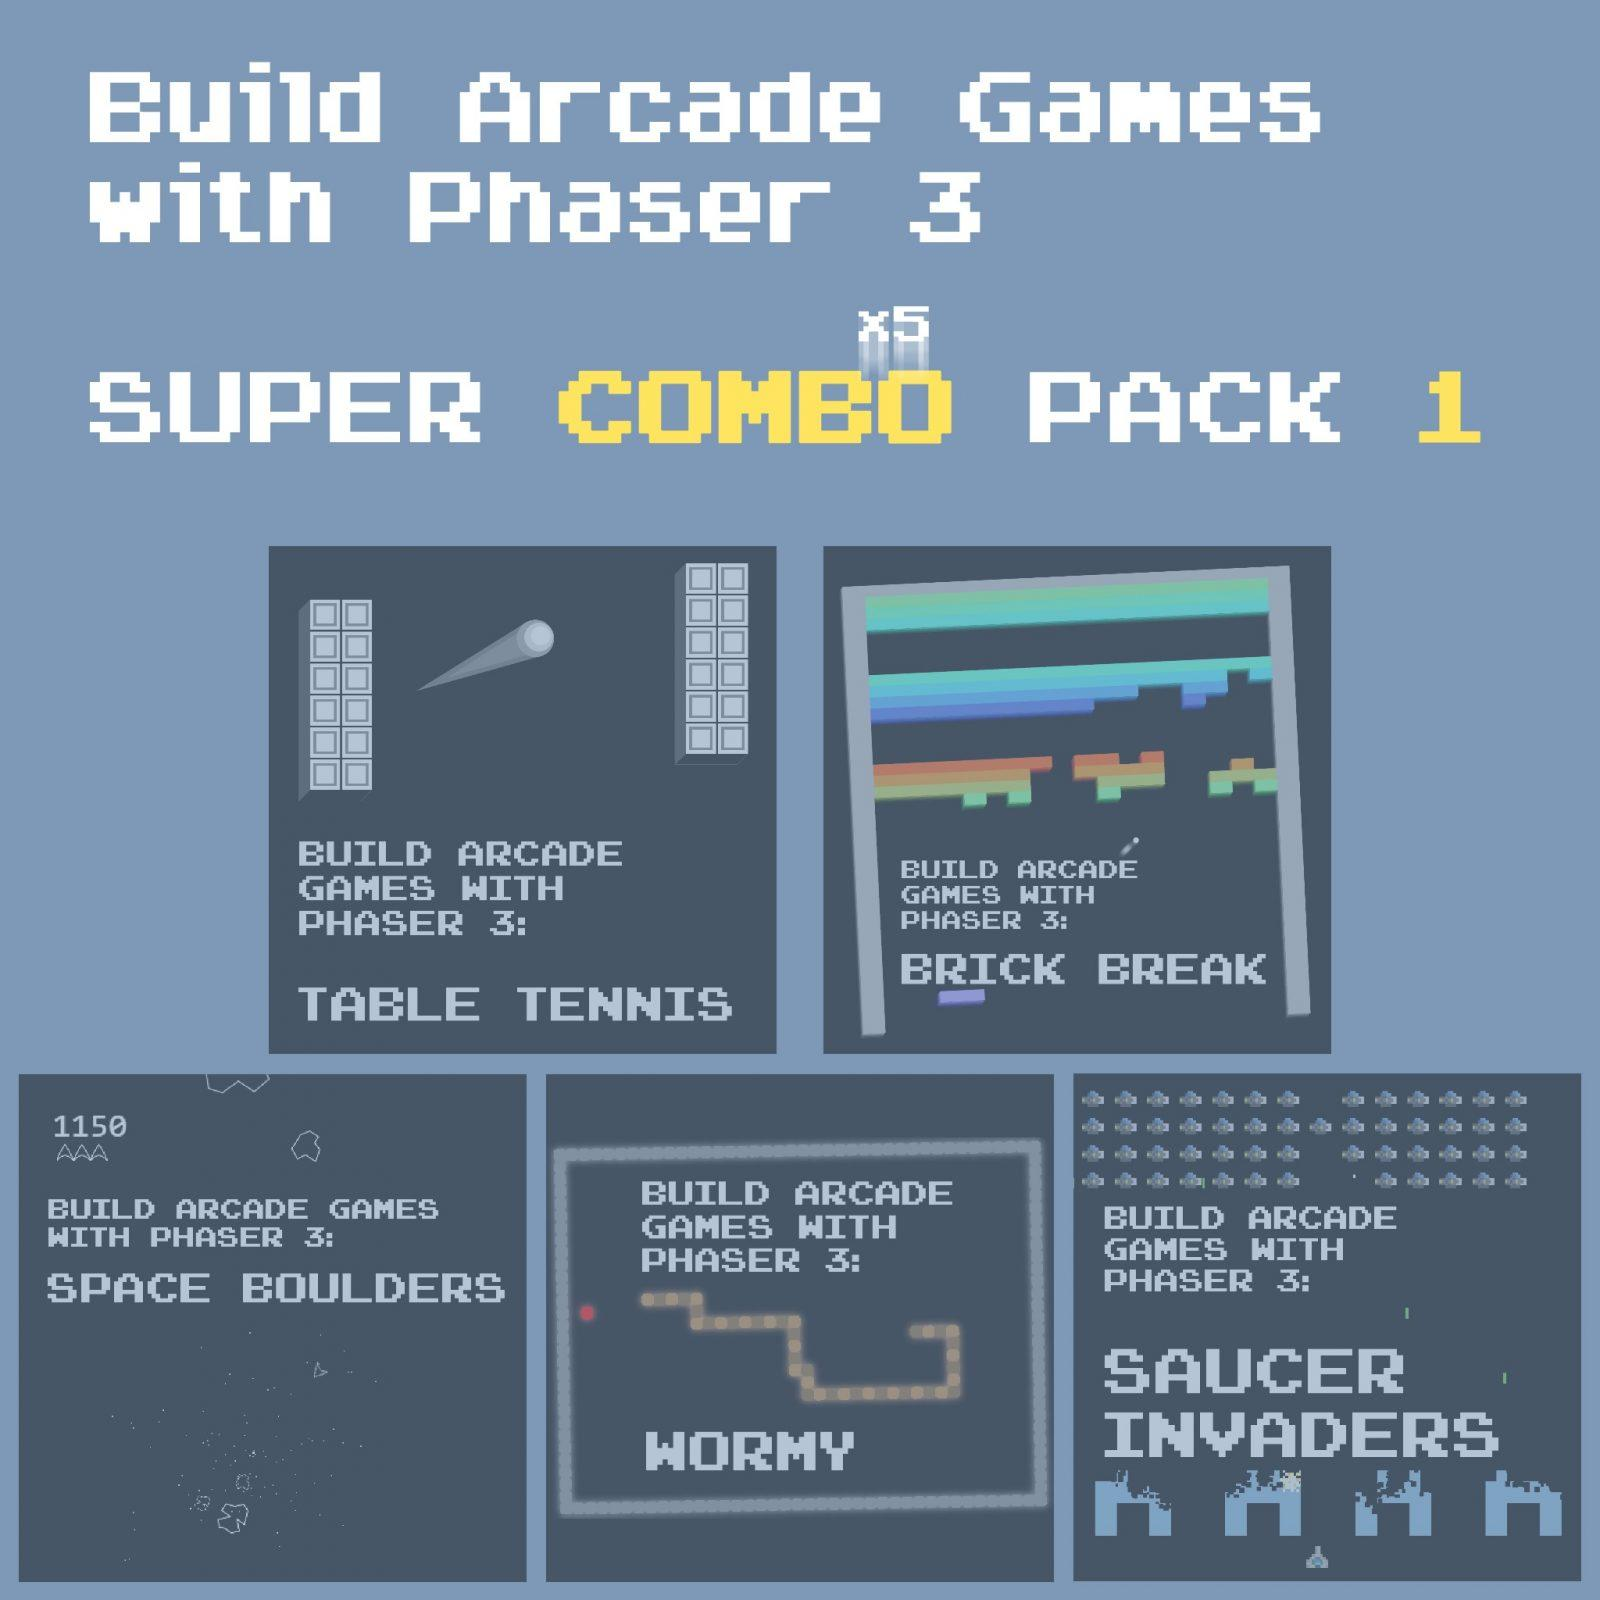 Build Arcade Games with Phaser 3